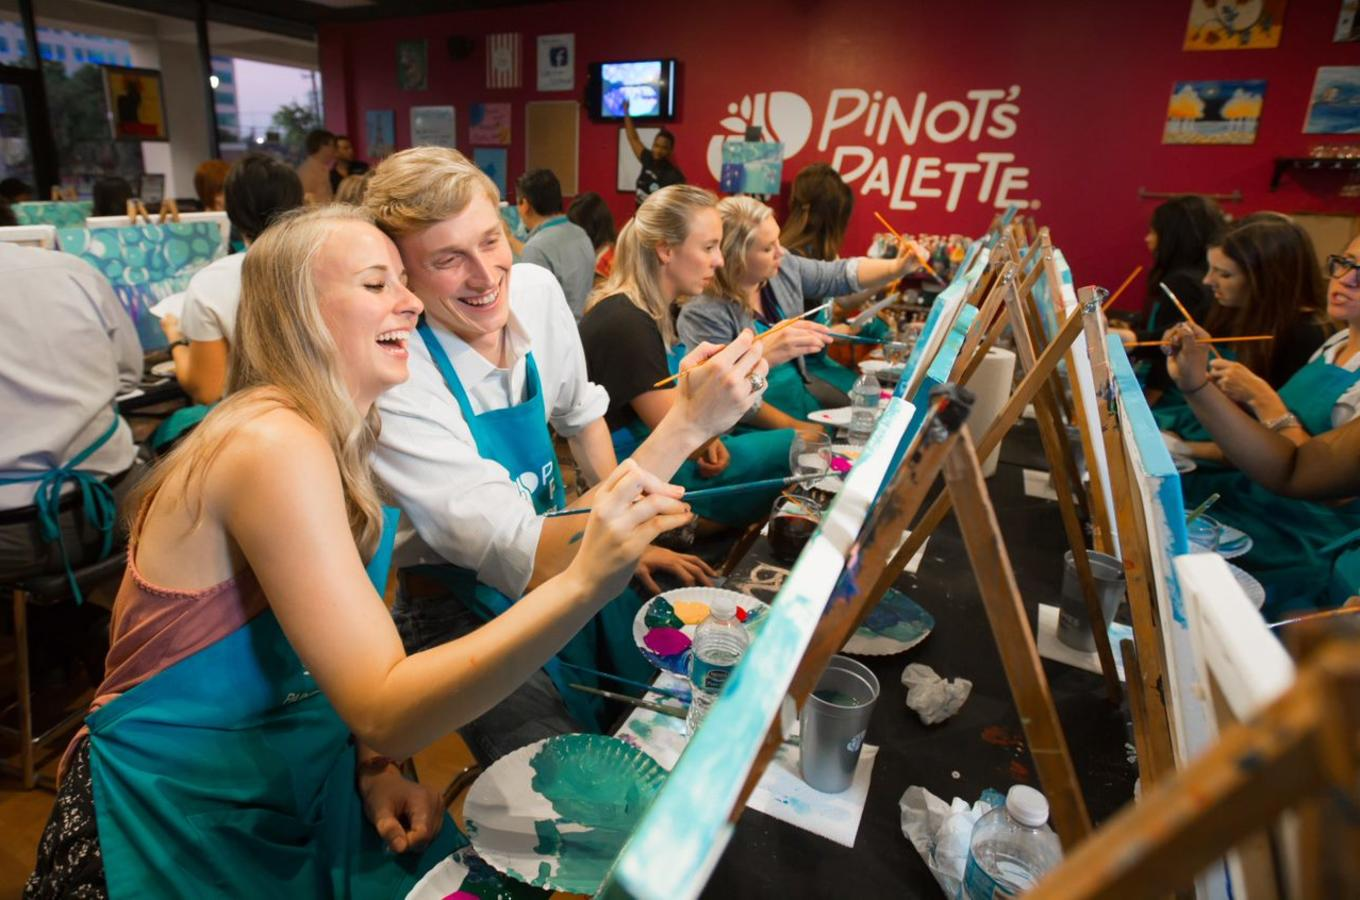 Pinot's Palette Smiling Painters